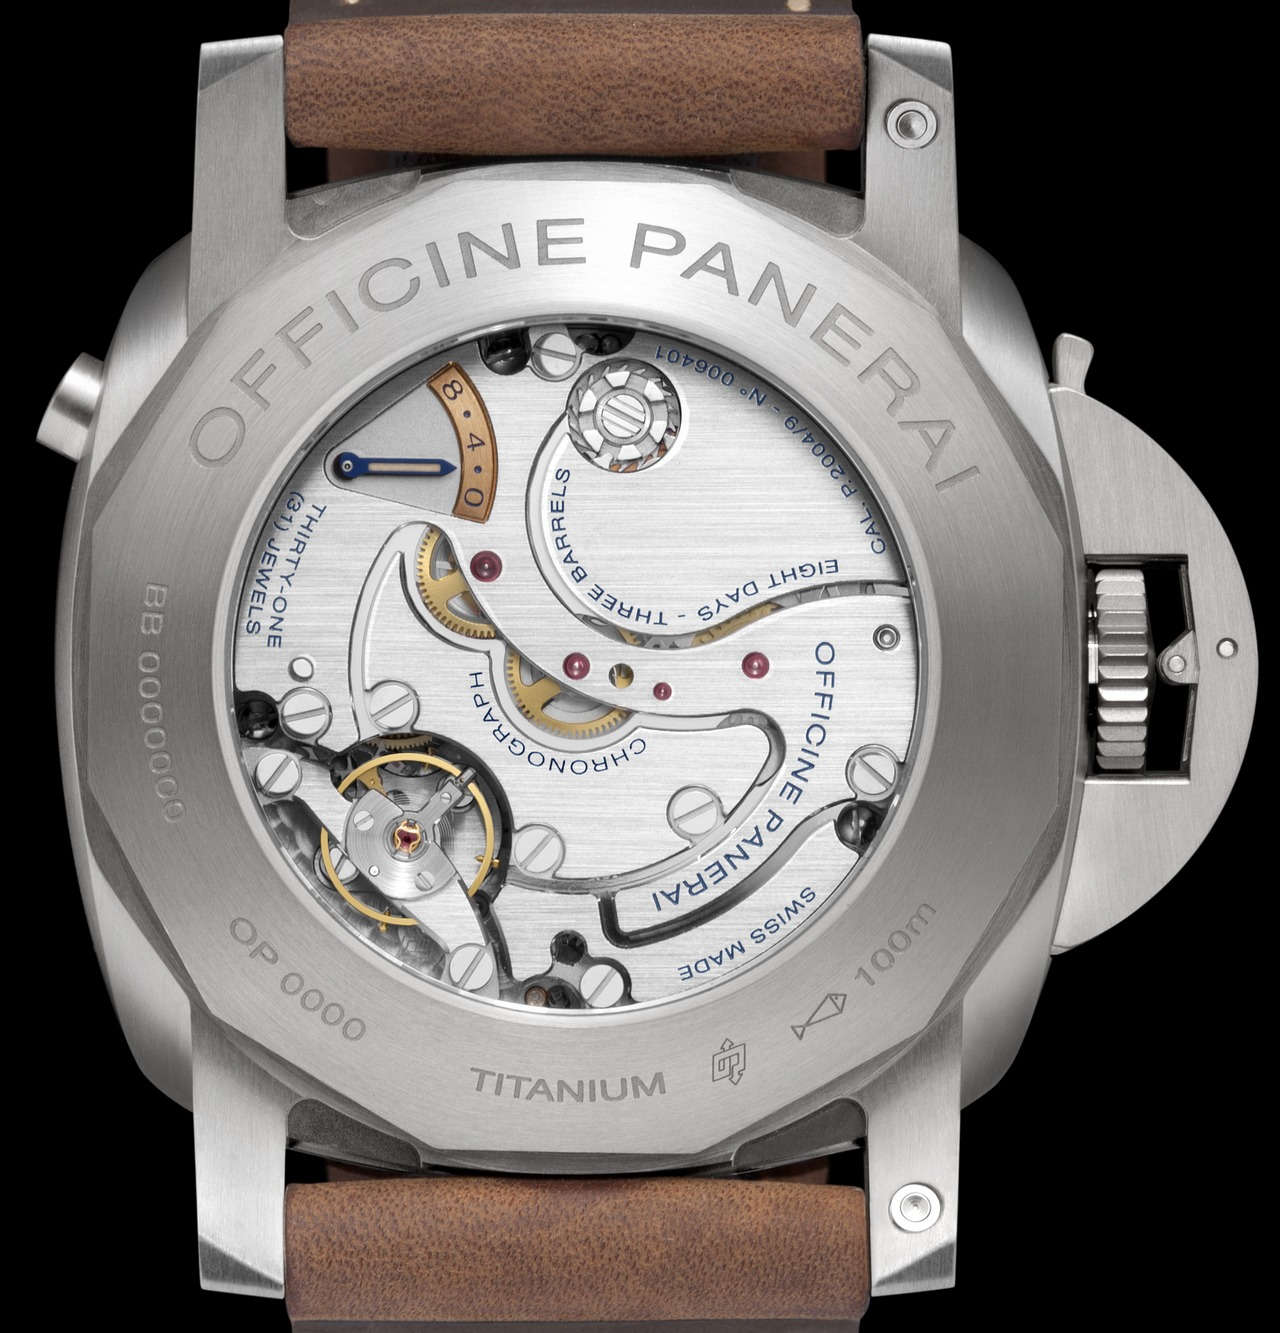 sihh-2014-officine-panerai-luminor-1950-chrono-monopulsante-left-handed-8-days-titanio-47mm-limited-edition-pam579-prezzo-price_0-100_8